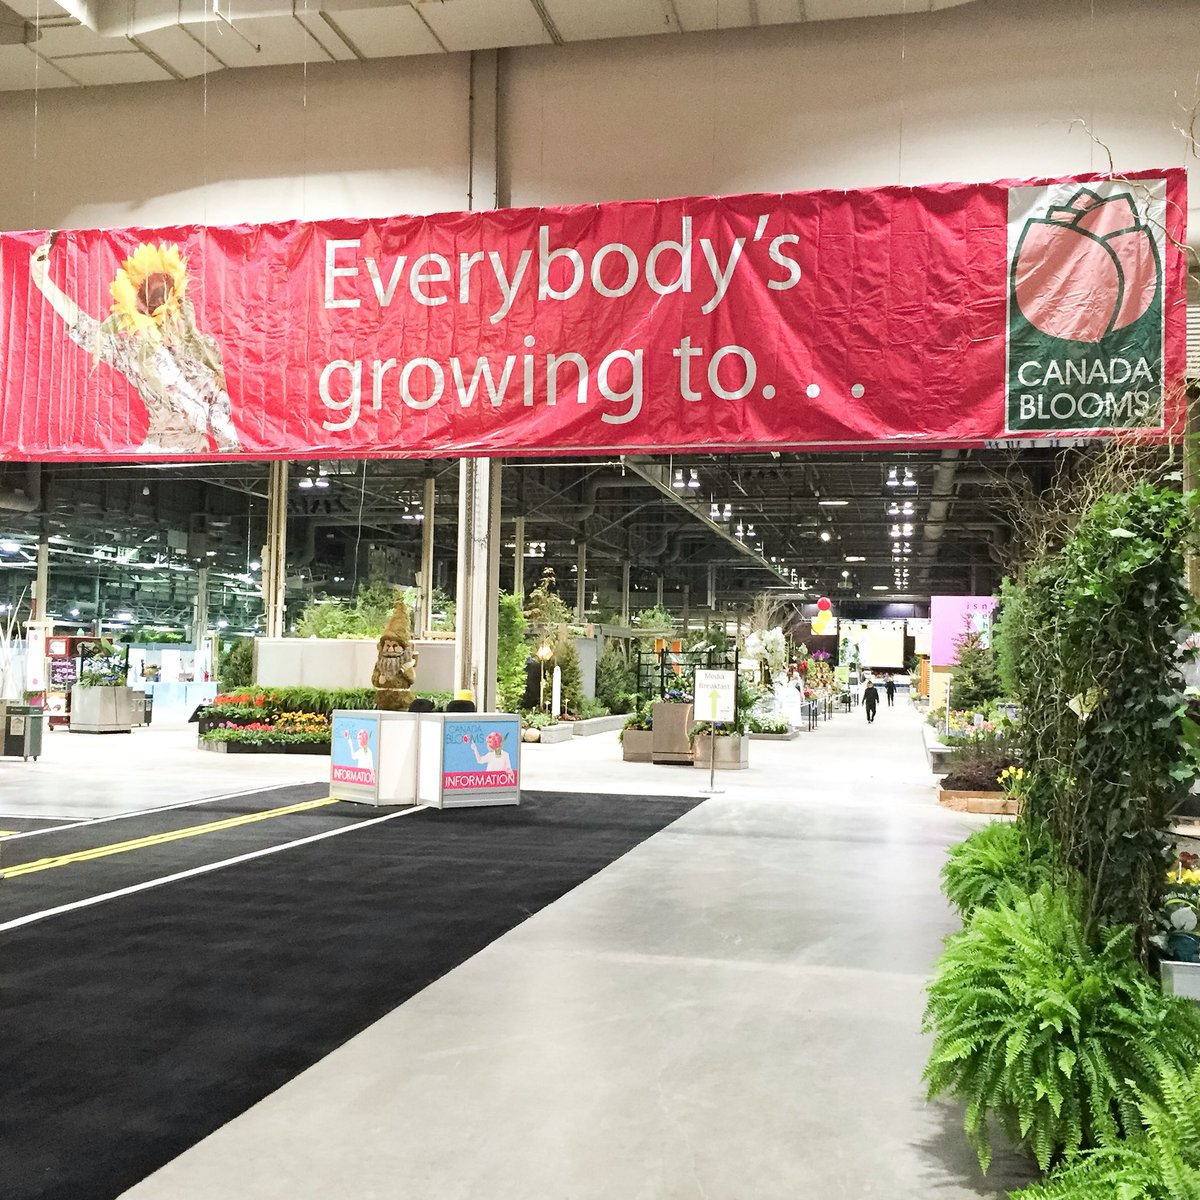 Spring has sprung @canadablooms! Don't miss out, purchase your tickets here: https://t.co/1YSj213HP7 #canadablooms https://t.co/spUClgHNsL